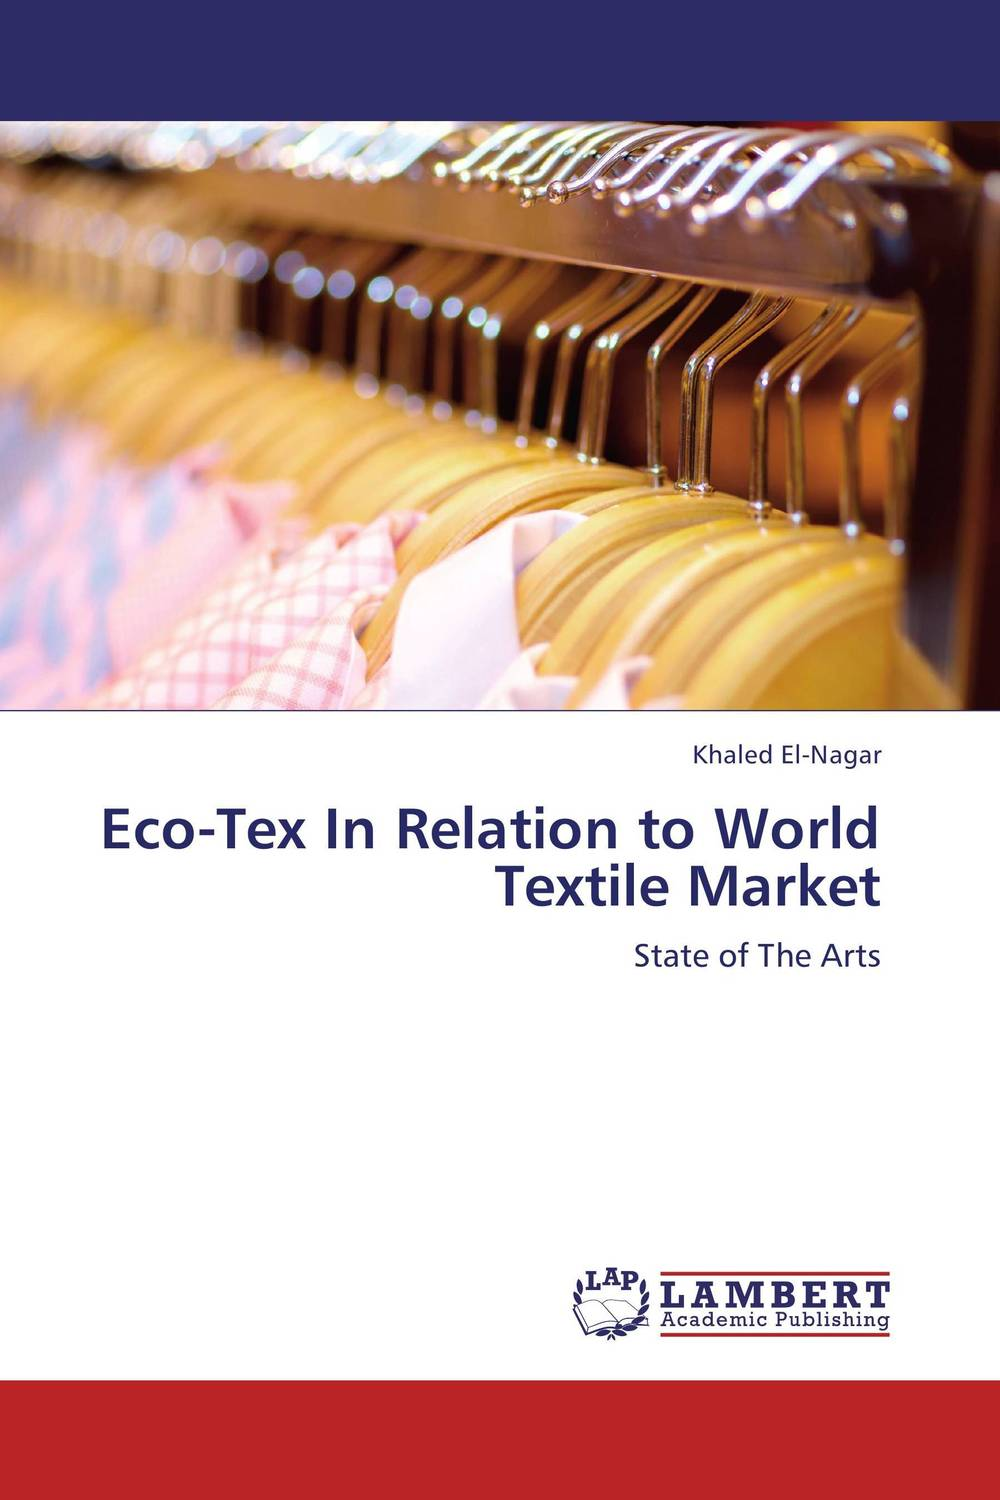 Eco-Tex In Relation to World Textile Market enzyme applications in textile processing & finishing